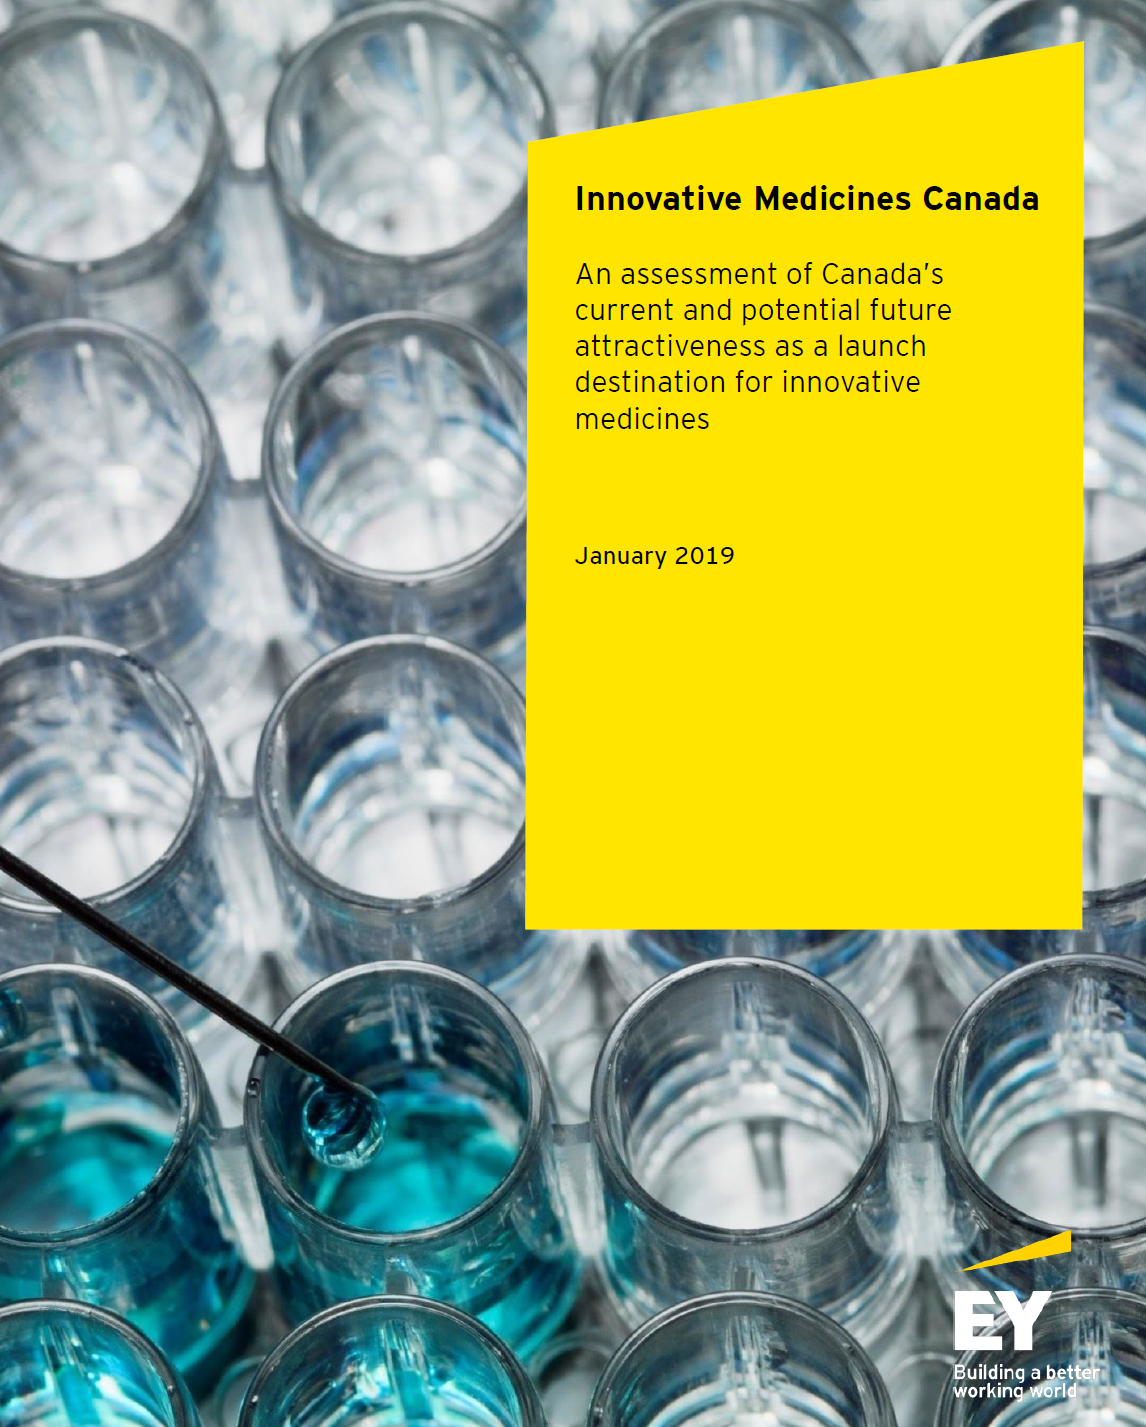 EY Report: An assessment of Canada's current and potential future attractiveness as a launch destination for innovative medicines (January 2019)